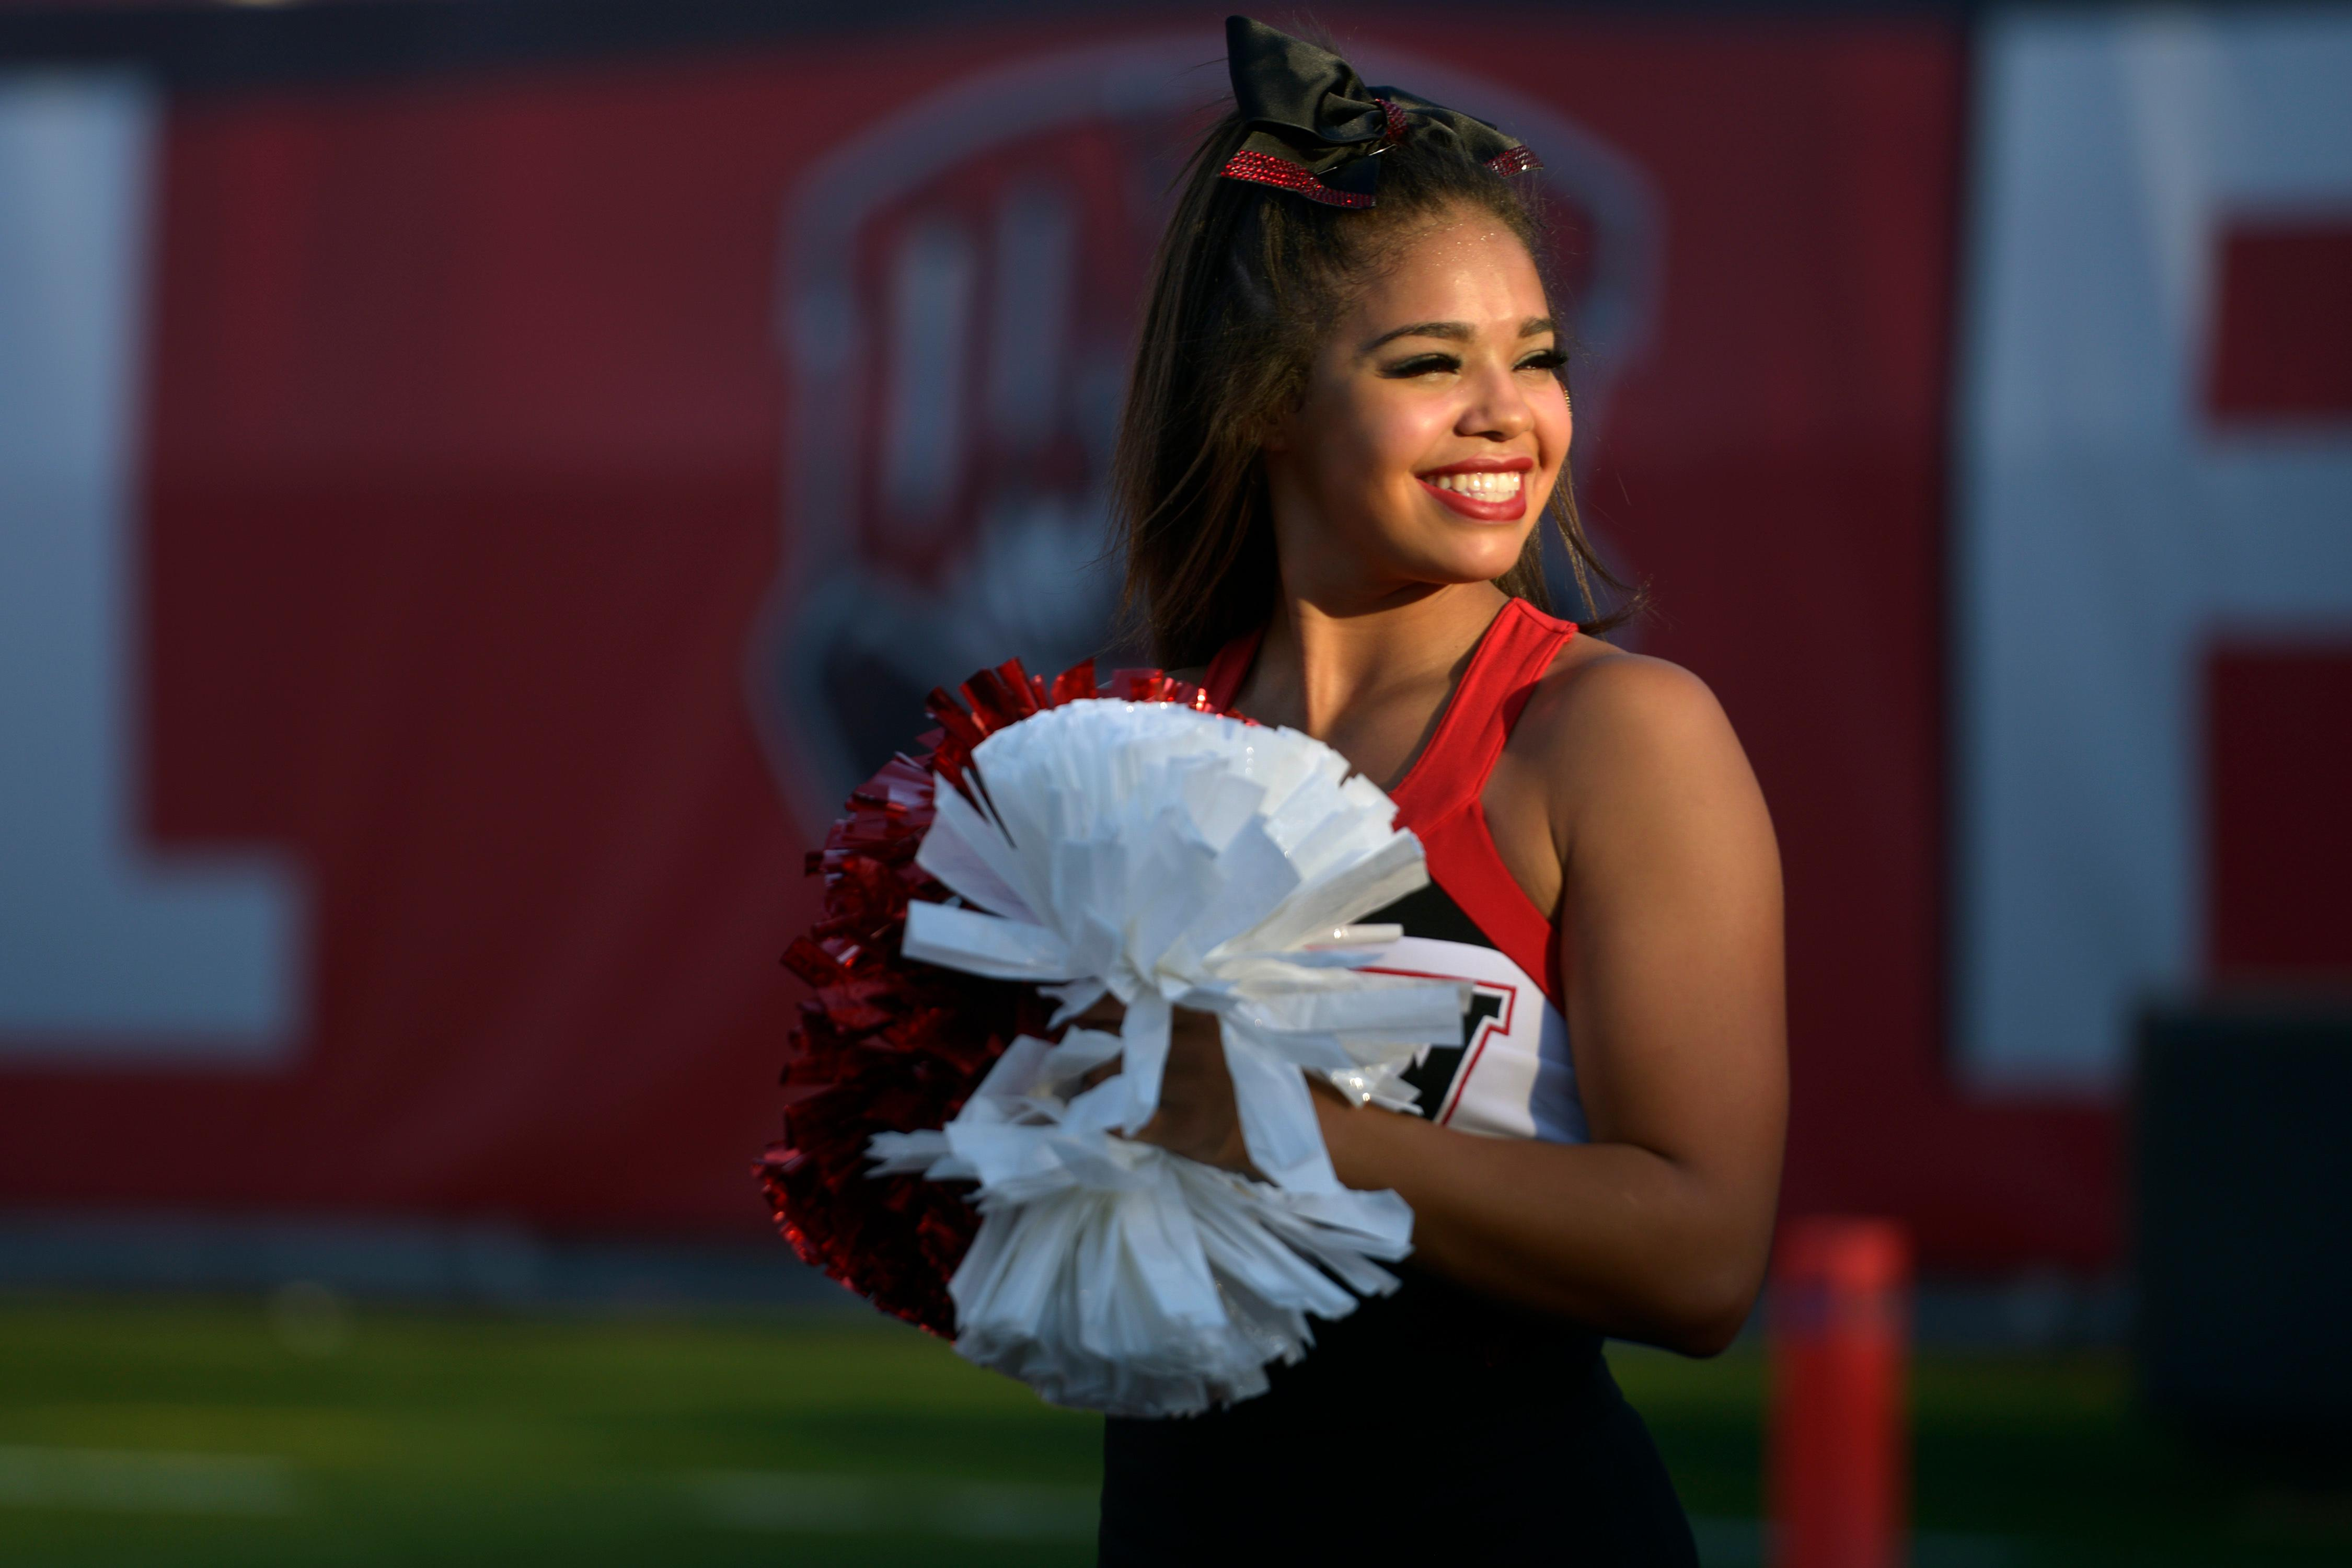 A UNLV cheerleader is illuminated by late afternoon light before their game against Howard University Saturday, September 2, 2017, at Sam Boyd Stadium in Las Vegas. Howard defeated UNLV 43-40 to notch what is believed to be the biggest upset in college football history. [Sam Morris/Las Vegas News Bureau]